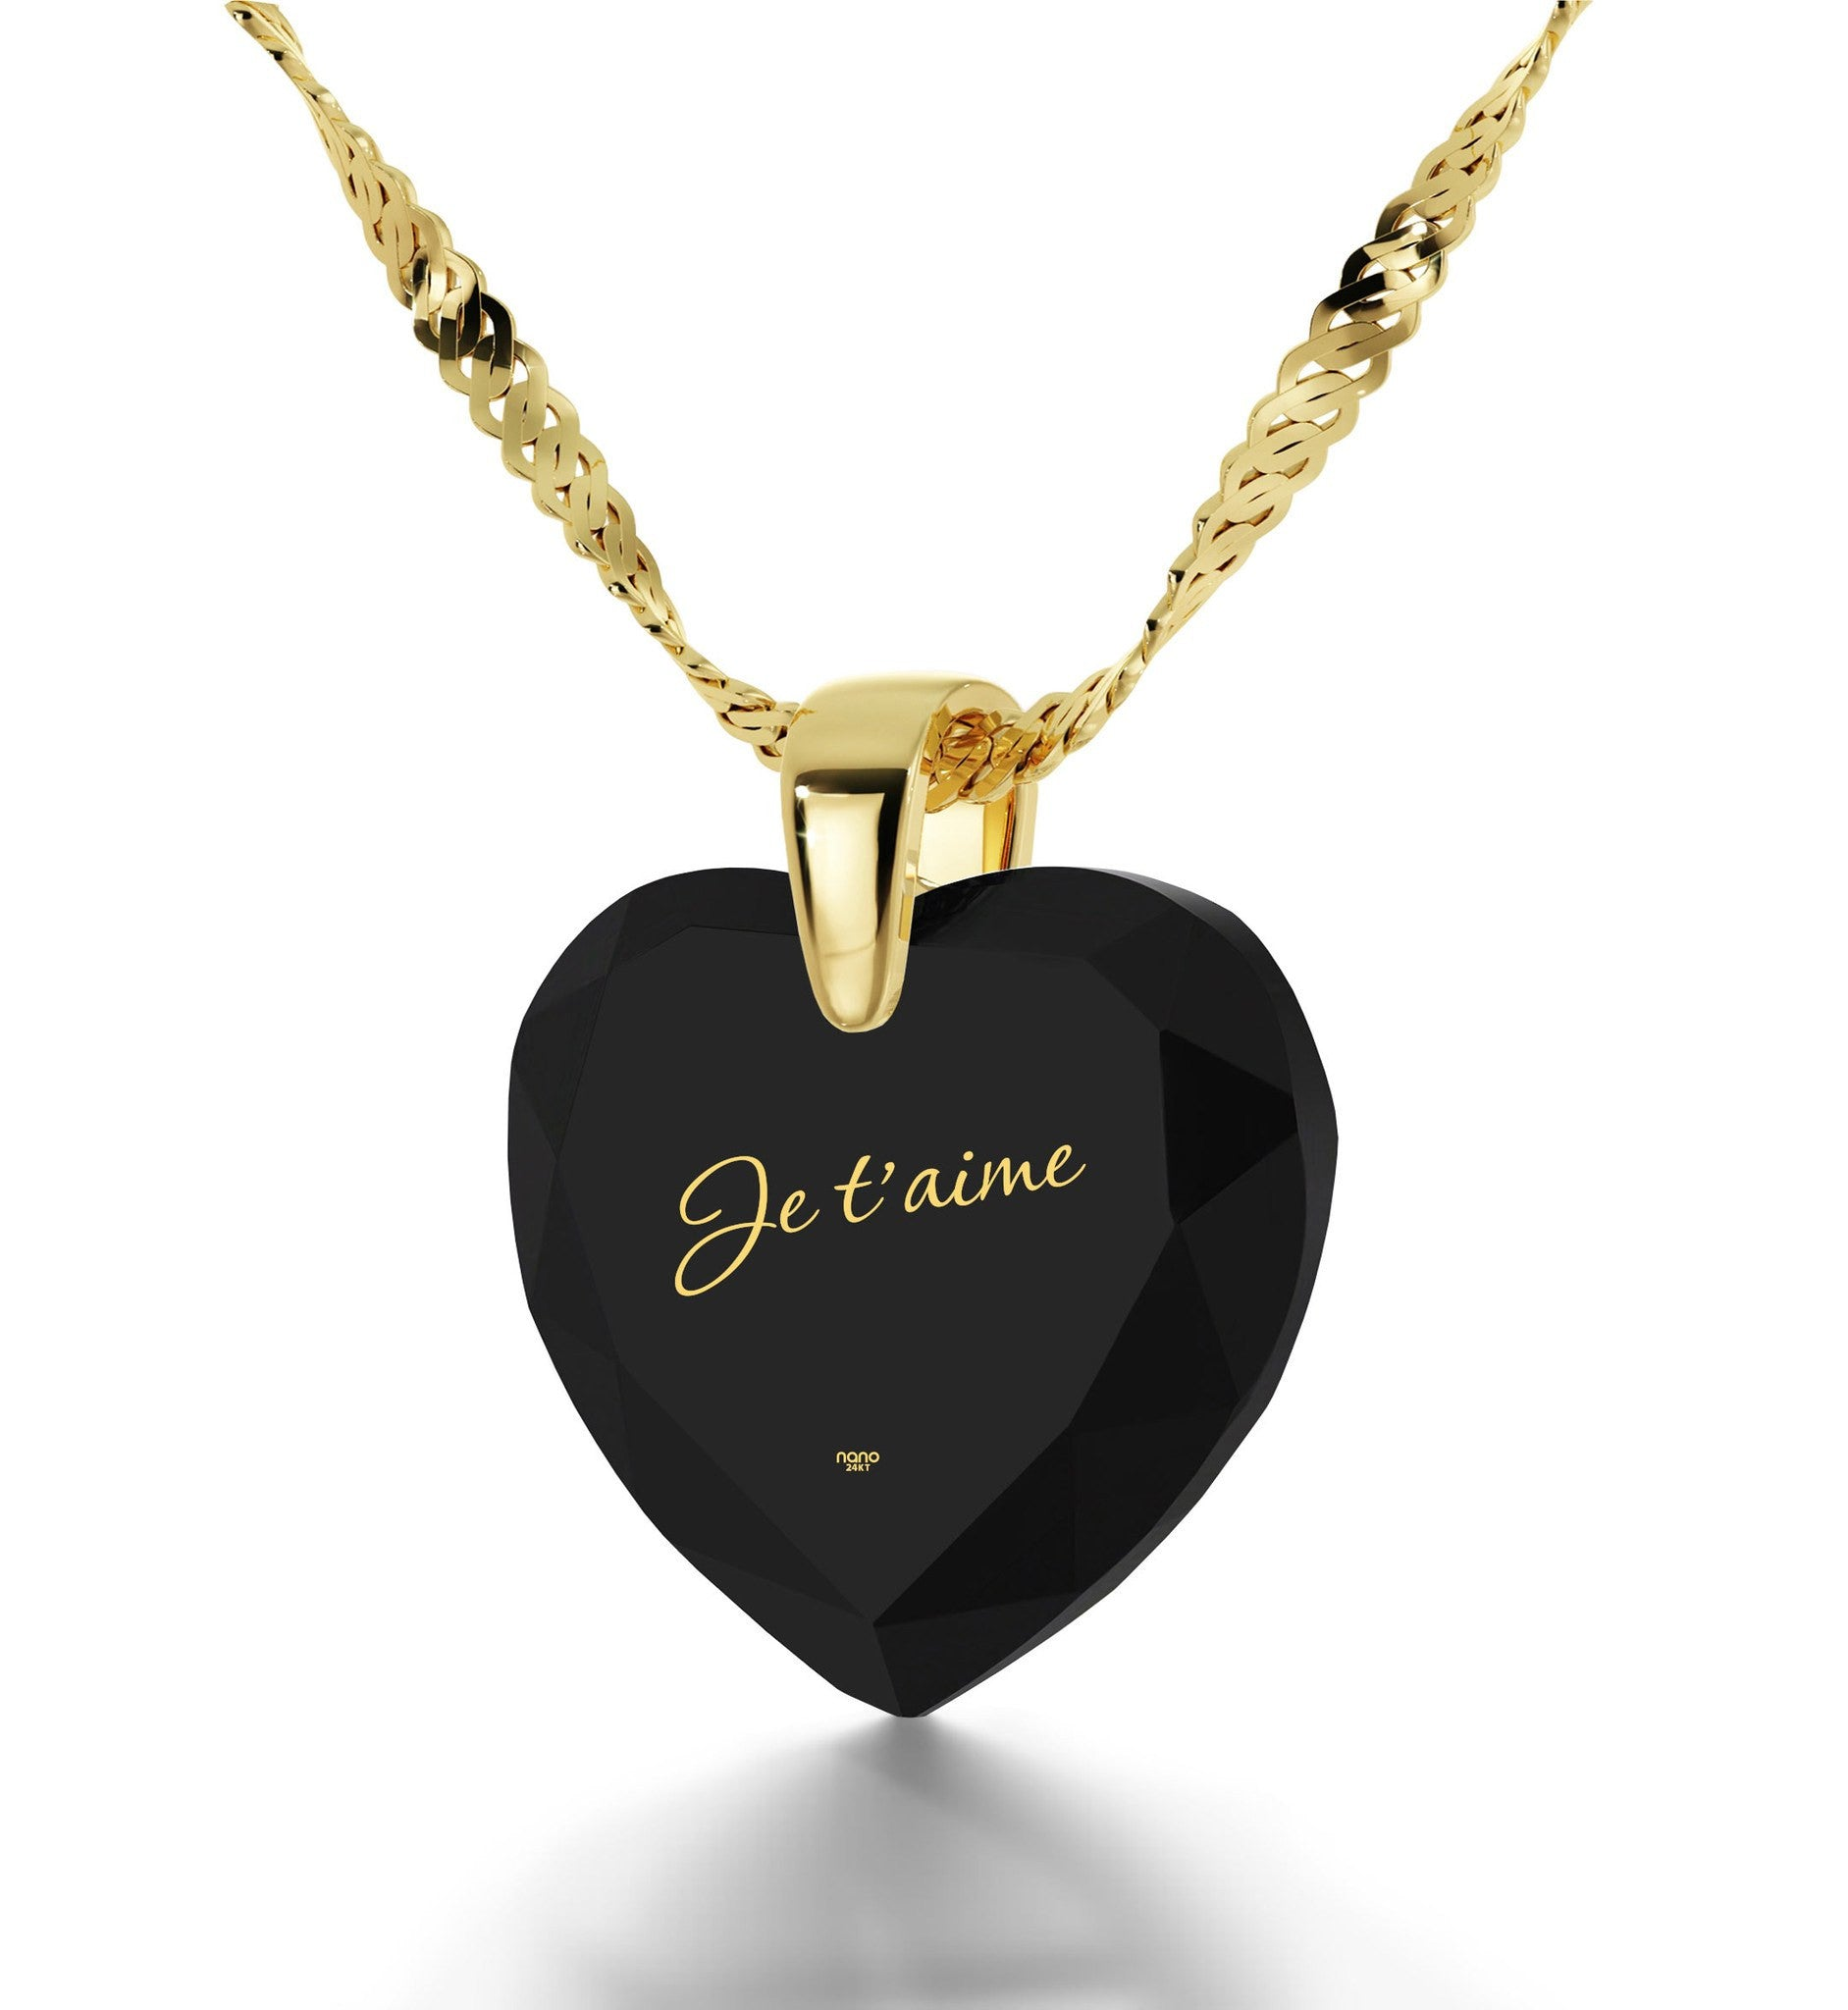 "Heart Necklaces for Girlfriend, CZ Jewelry,""Je T'aime"", Great Gifts for Wife, Nano"